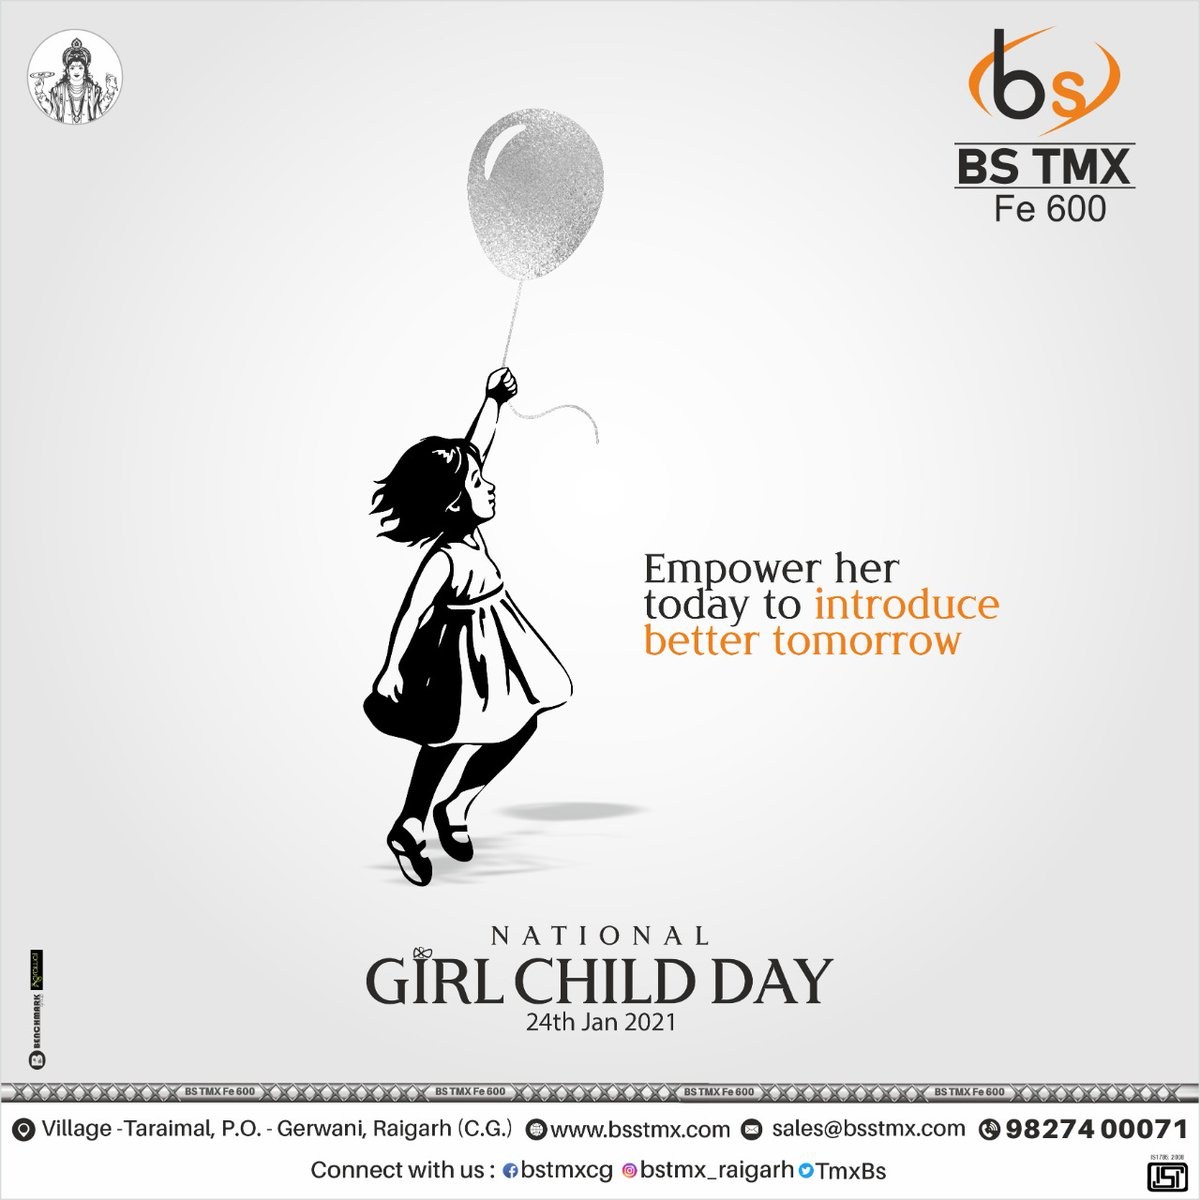 Don't think they are inferior because, in reality, they are superior.  National Girl Child Day!! . #bstmx #nationalgirlchildday #girlchildday #girlchild #girl #empowergirl #educategirl #babygirl #24jan2021 #24january